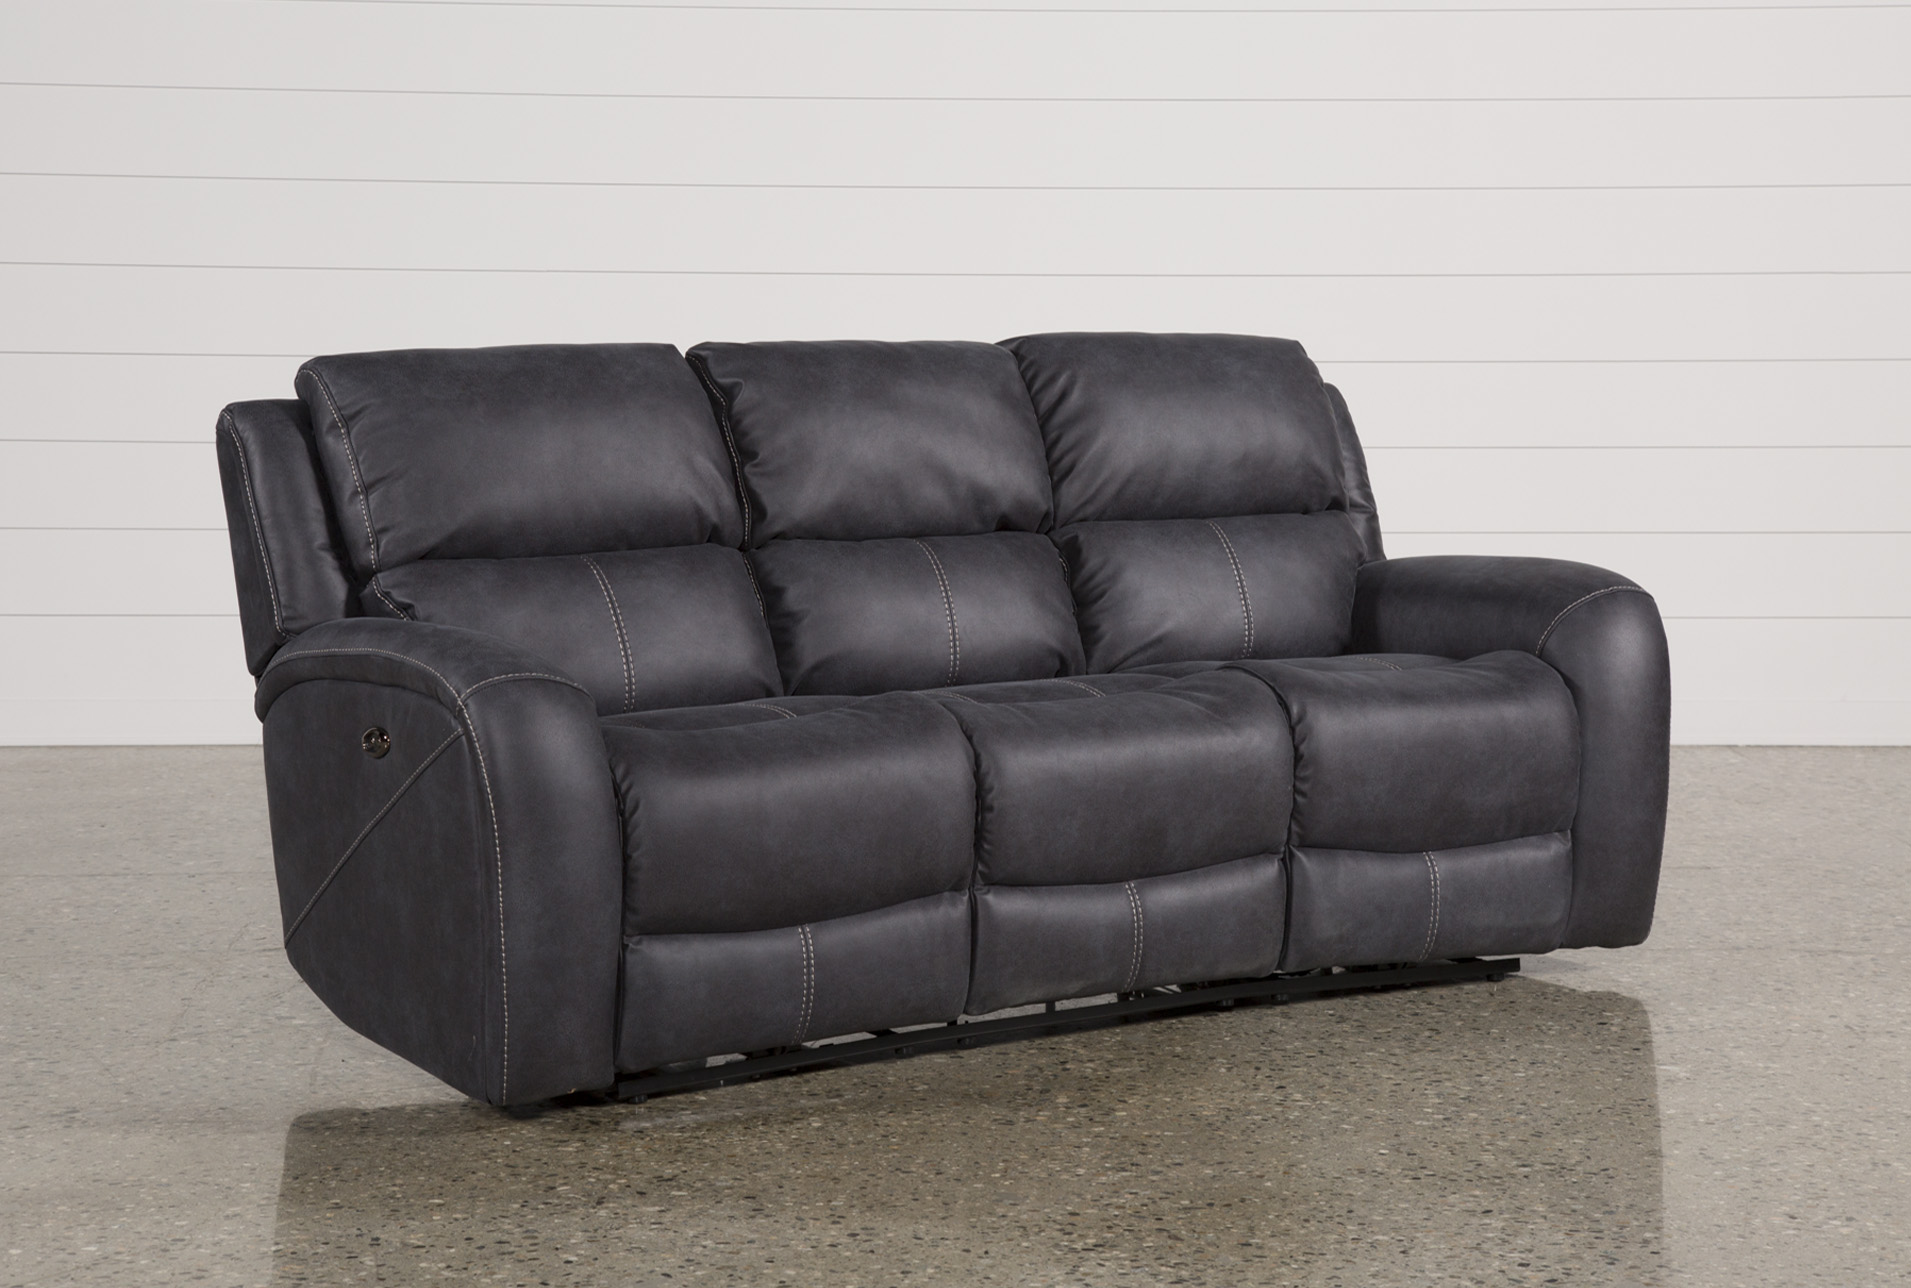 Charmant Deegan Charcoal Power Reclining Sofa